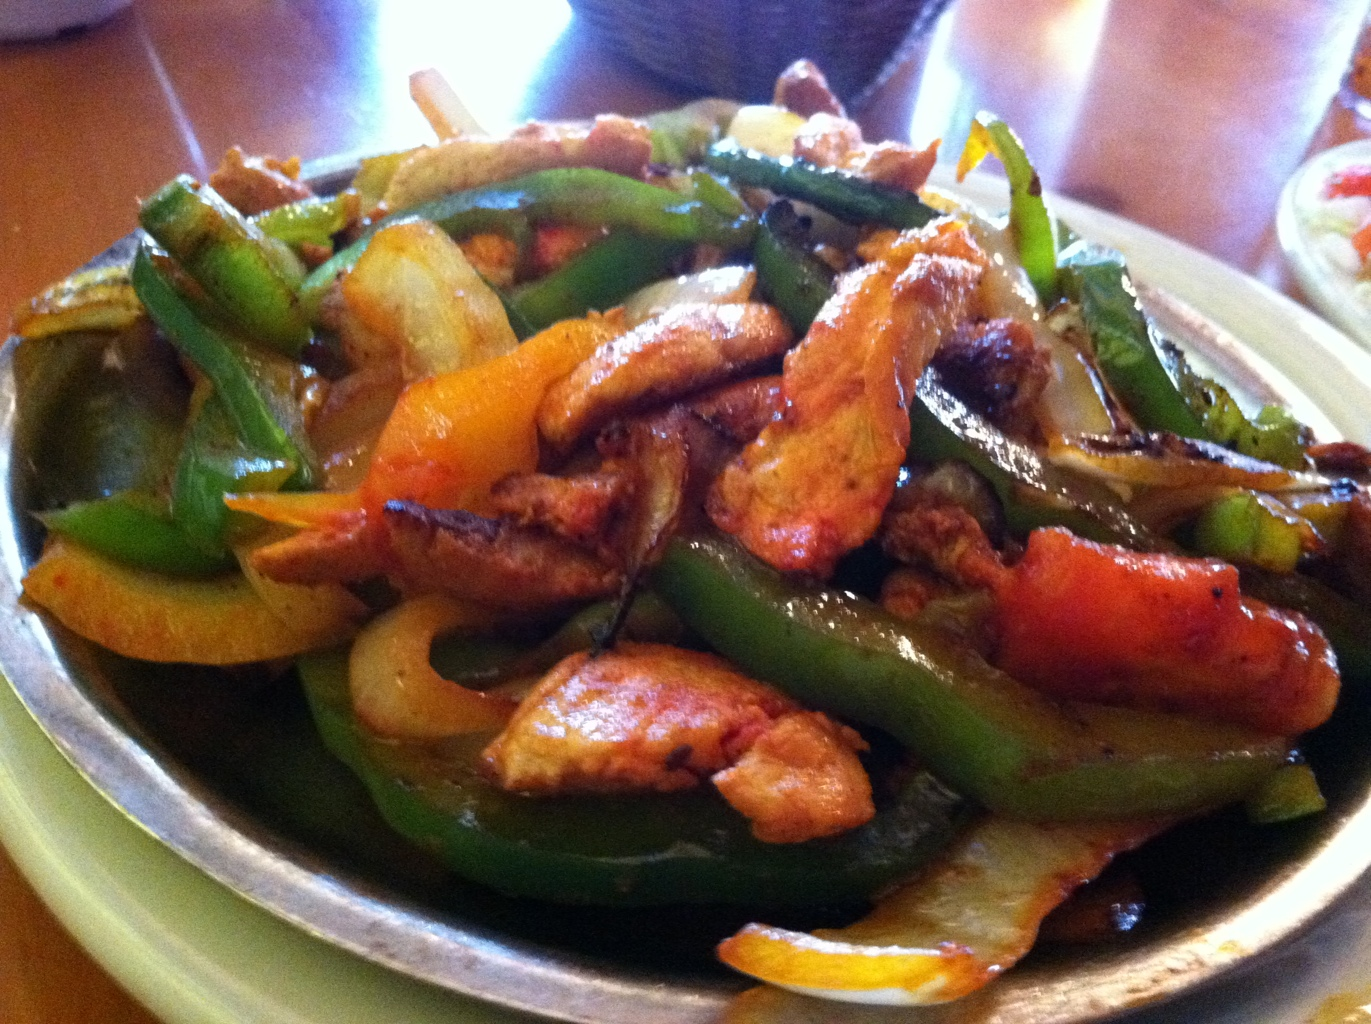 Chicken Fajitas From La Fiesta in Tallahassee, FL